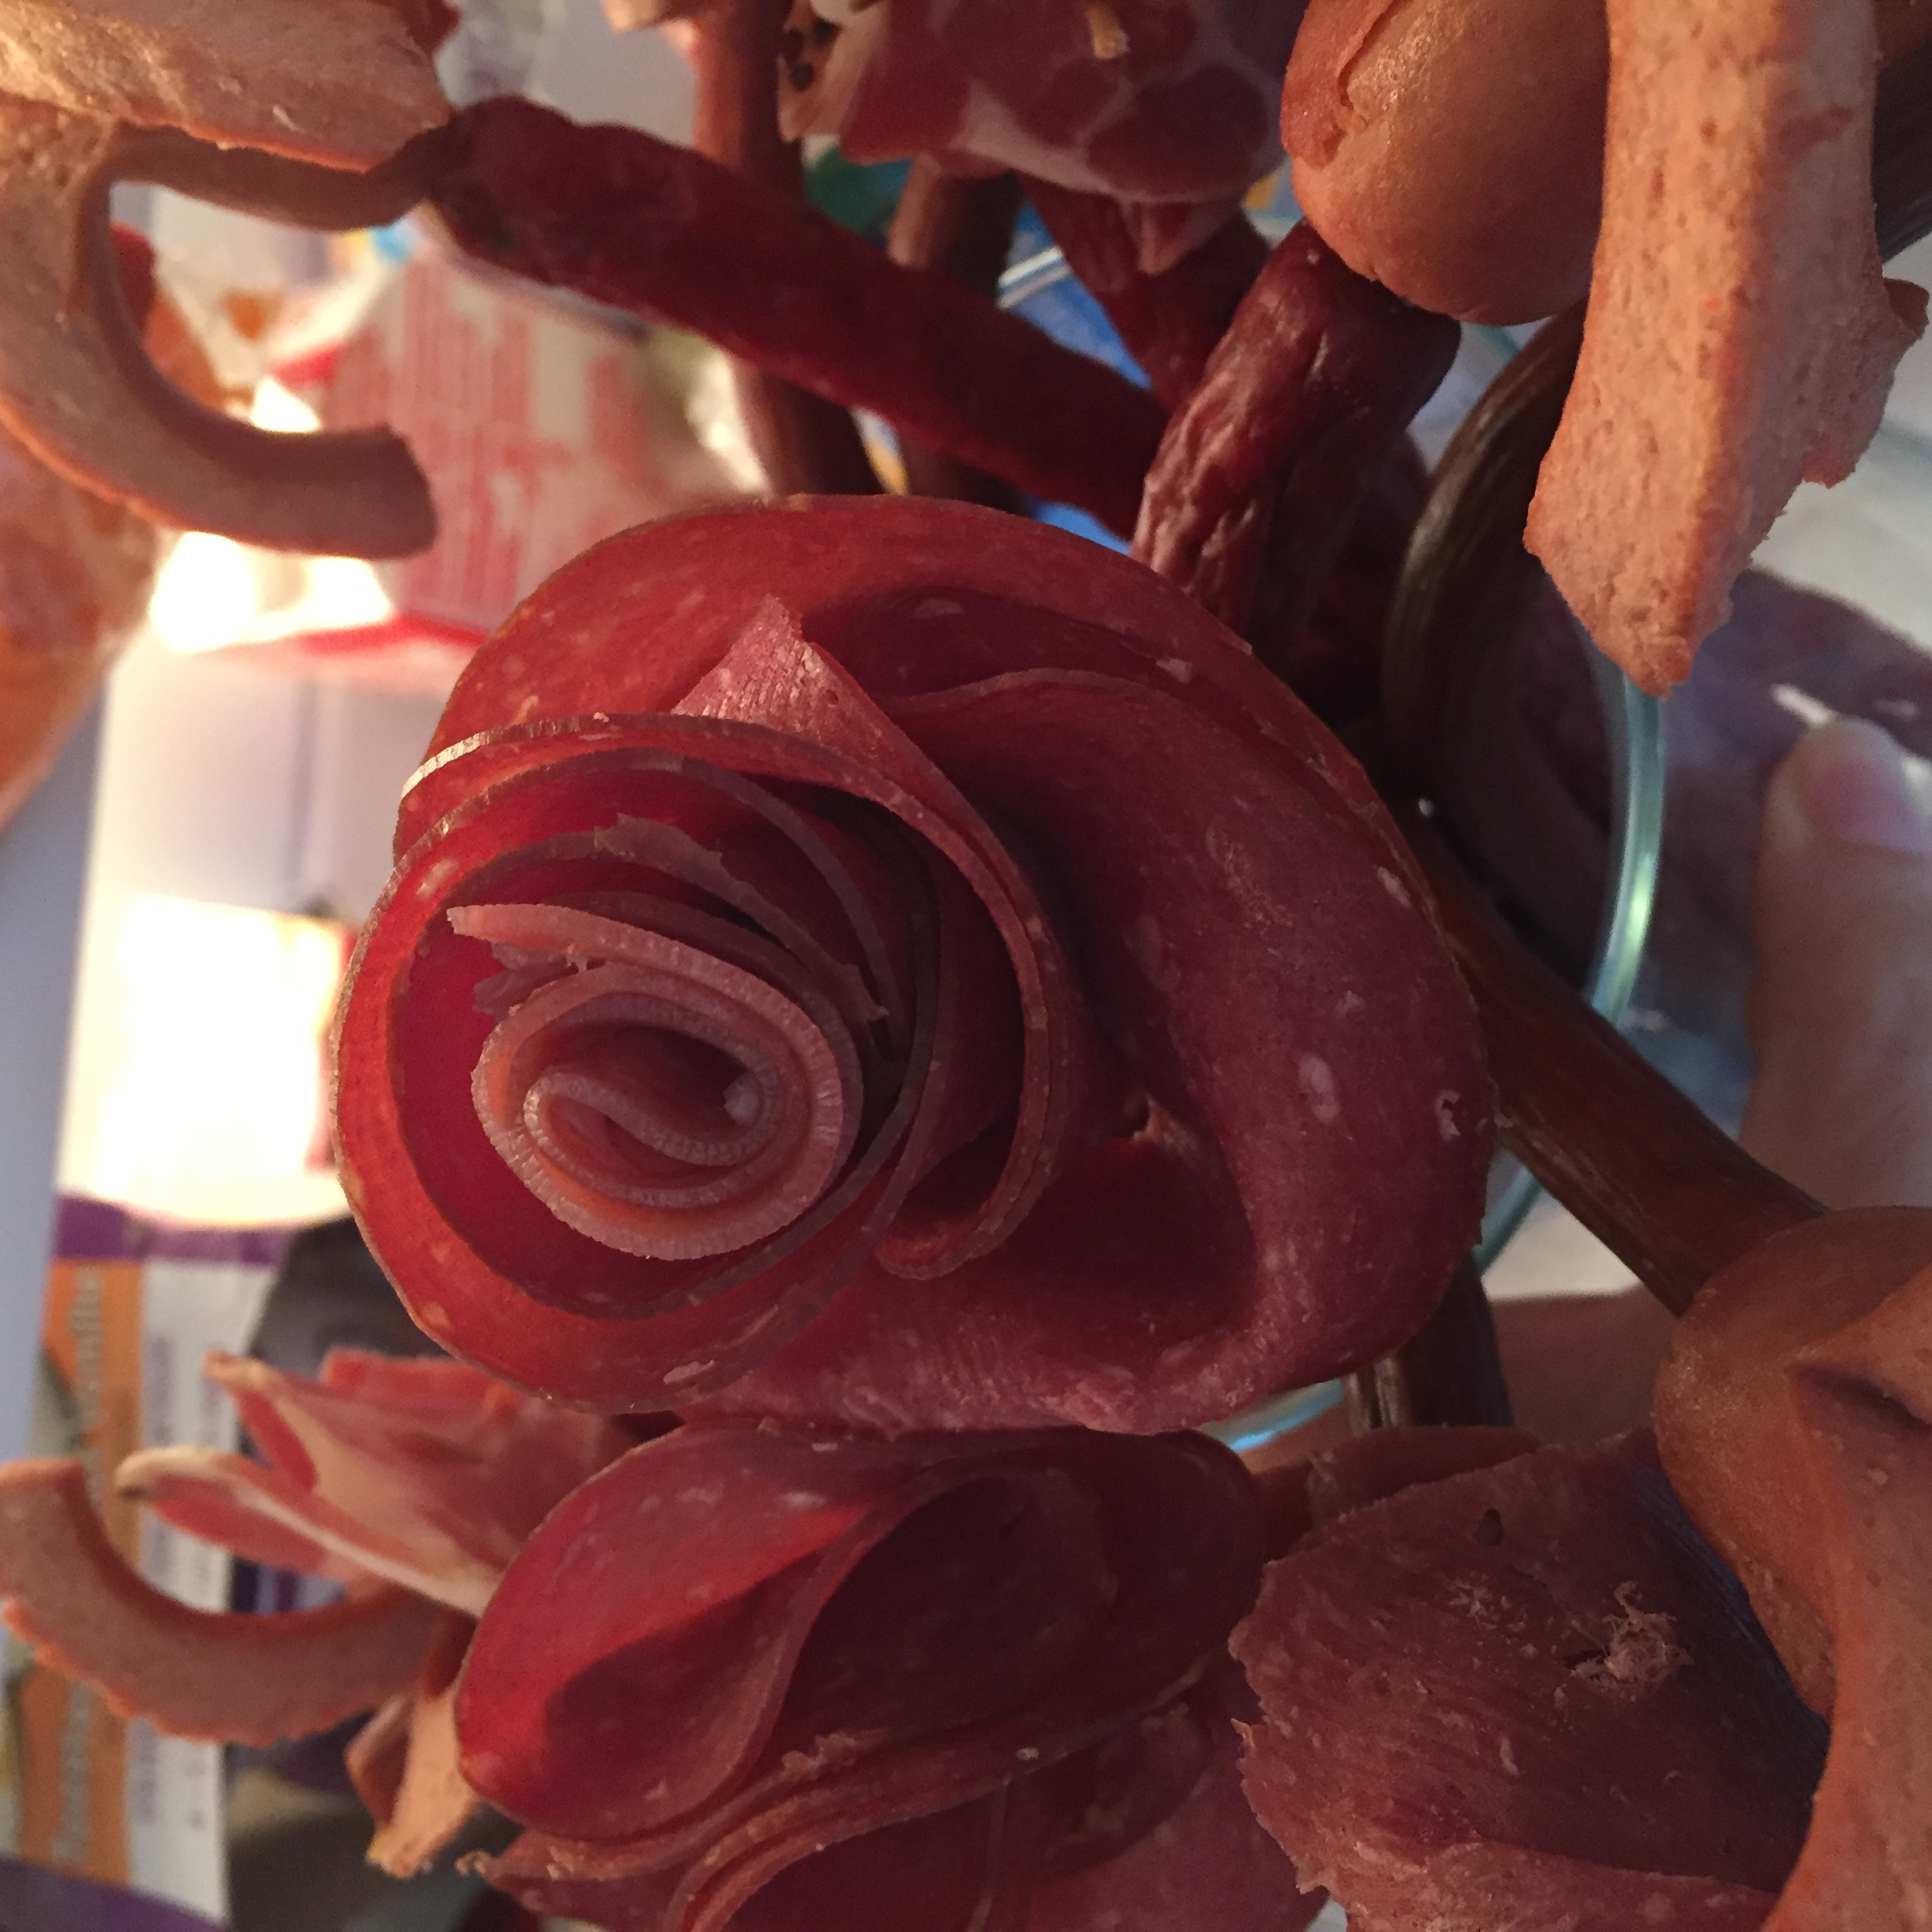 3B473C80 7DE8 480A AD06 4463C842B2A8 Meat bouquet of flowers - Father's Day DIY